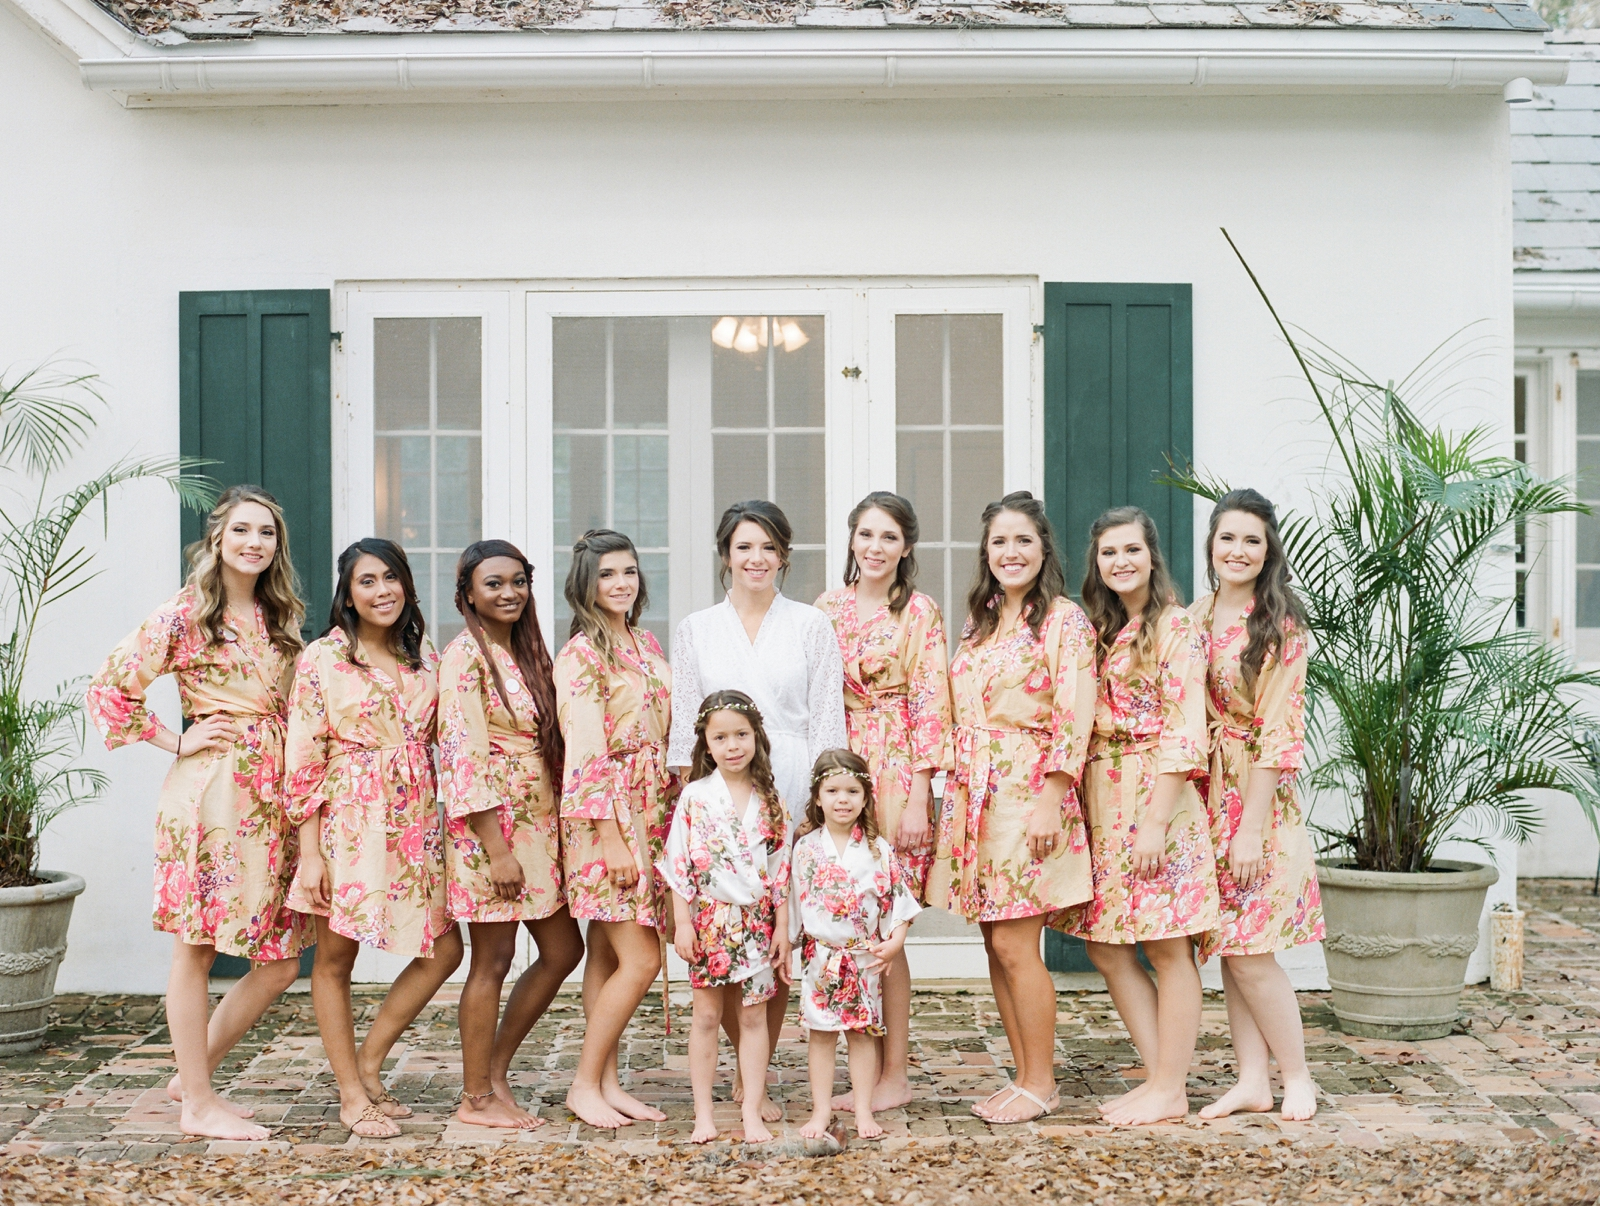 goodwood museum tallahassee wedding photographer - tallahassee florida - shannon griffin_0038.jpg